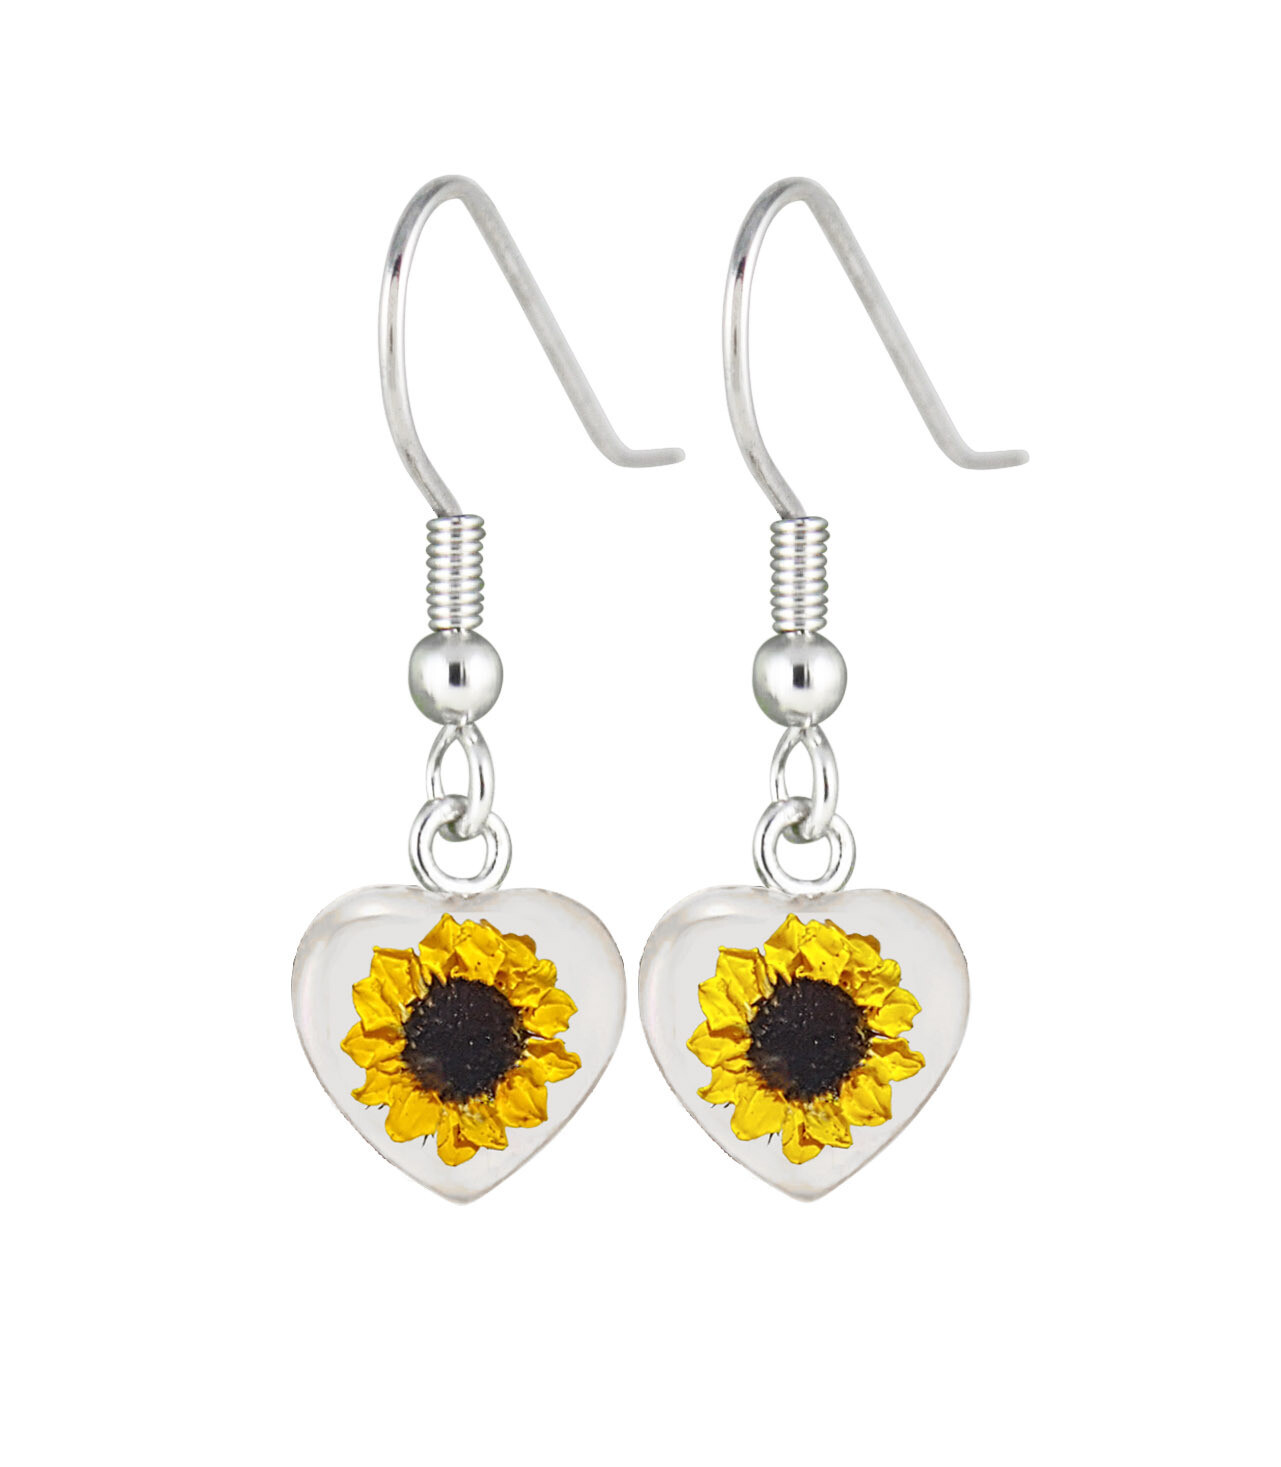 Sunflower, Heart Hanging Earrings, White Background.